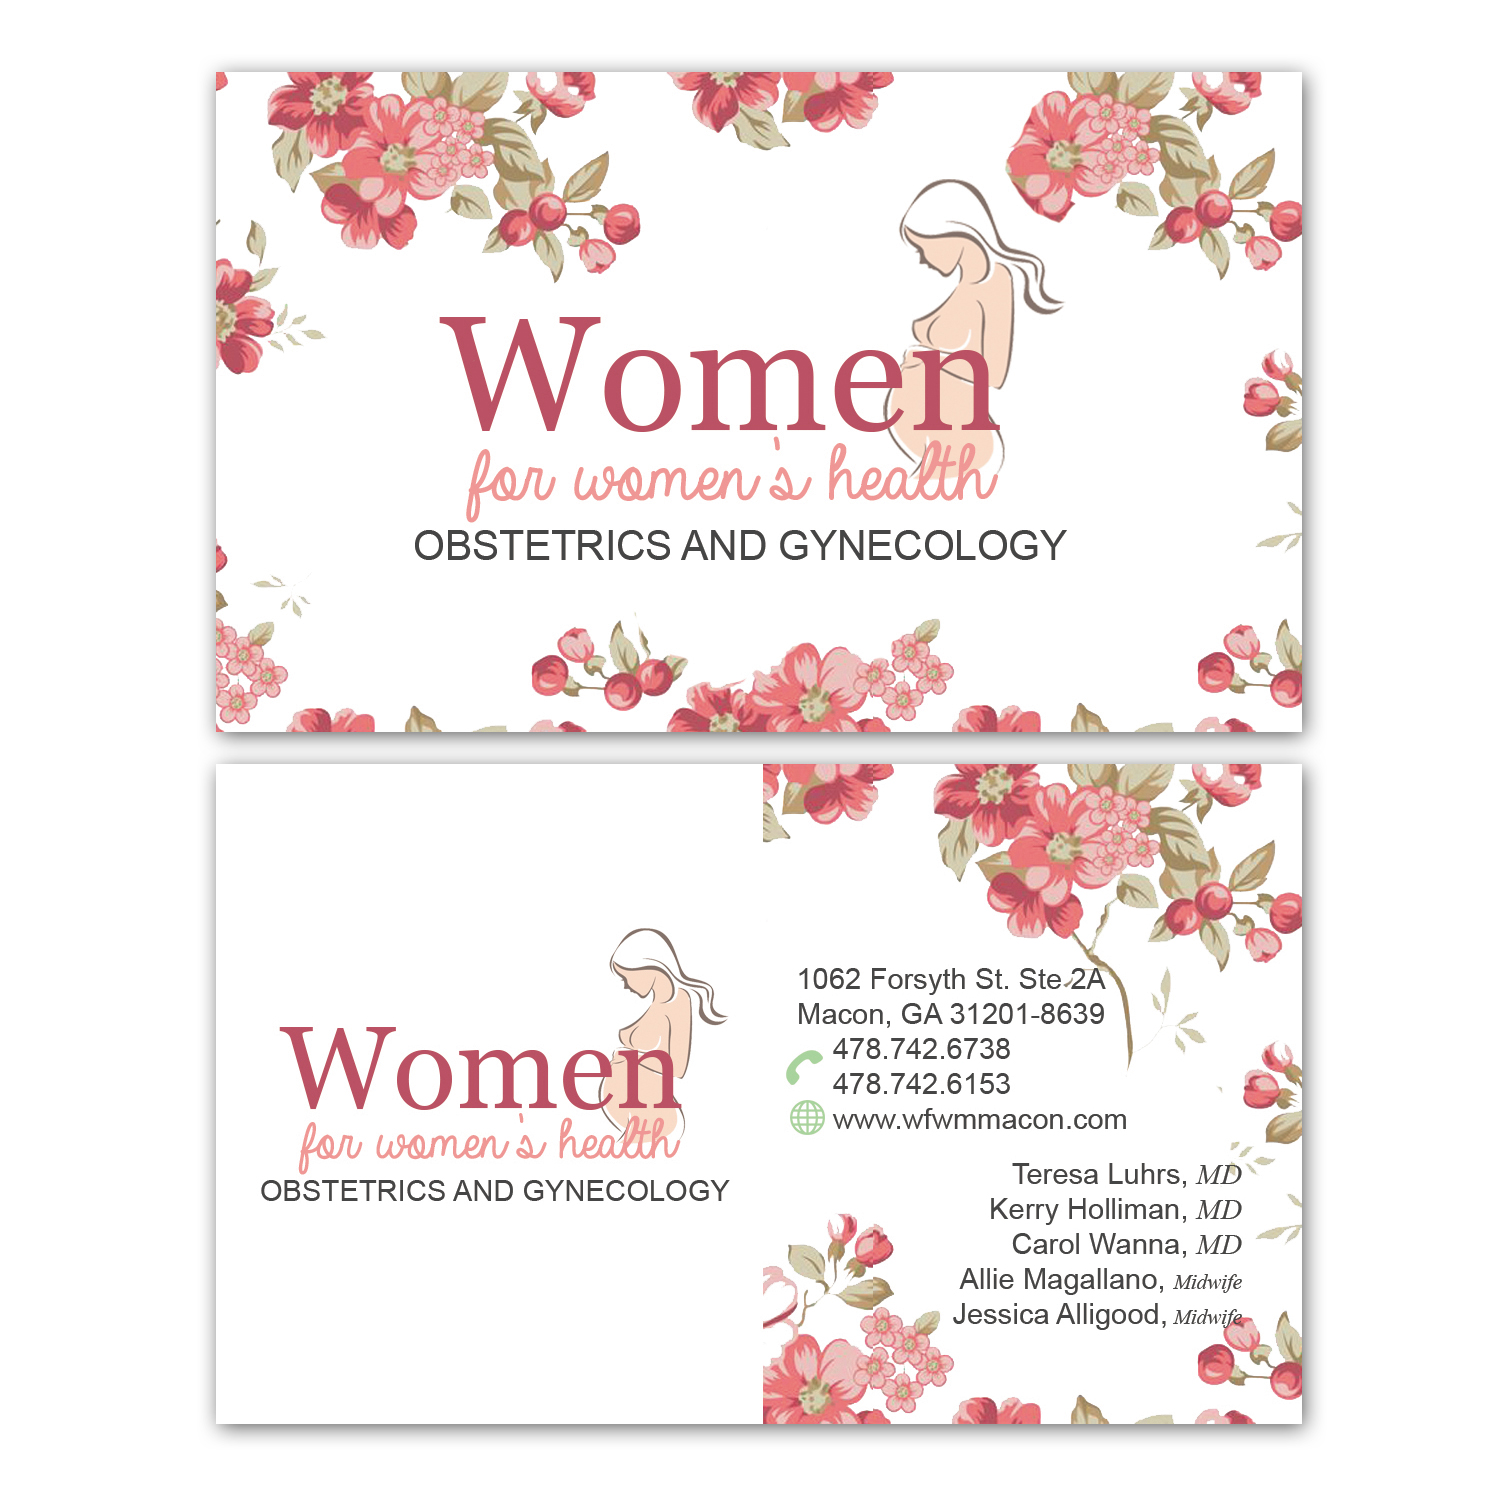 Personable, Elegant, Business Business Card Design for Women For ...